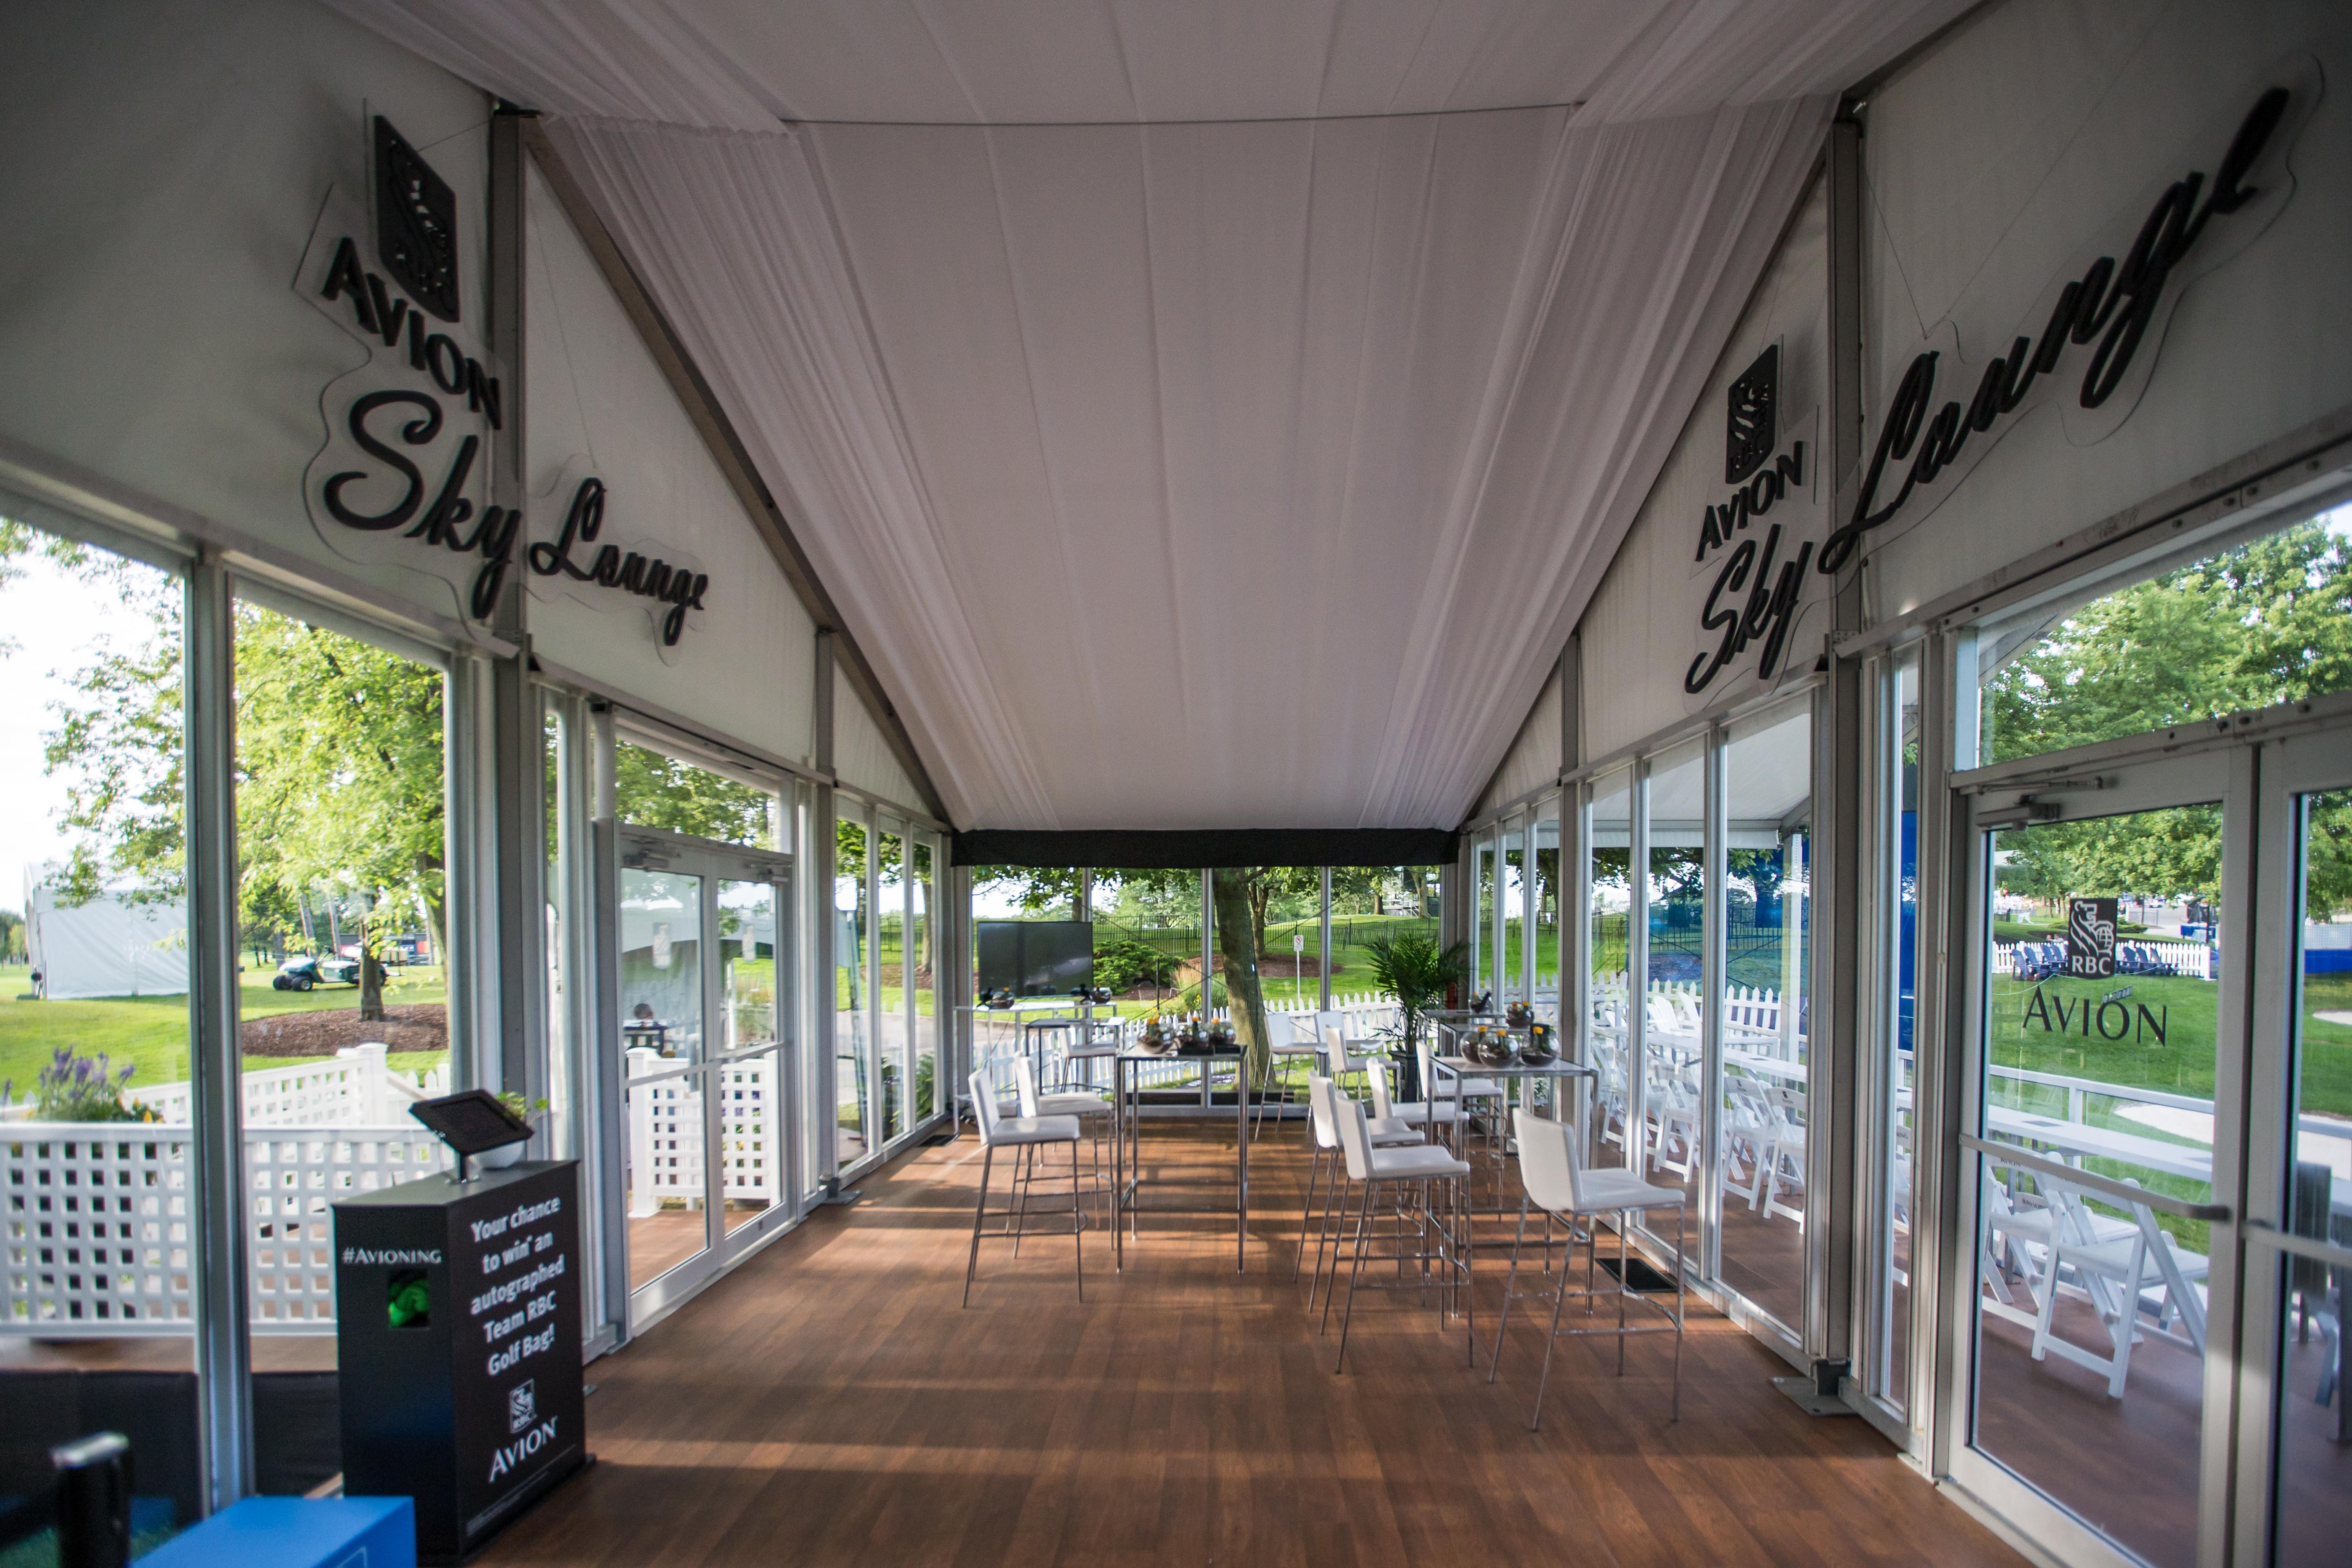 Interior of the exclusive RBC Avion Sky Lounge on the 16th green during the 2017 RBC Canadian Open.